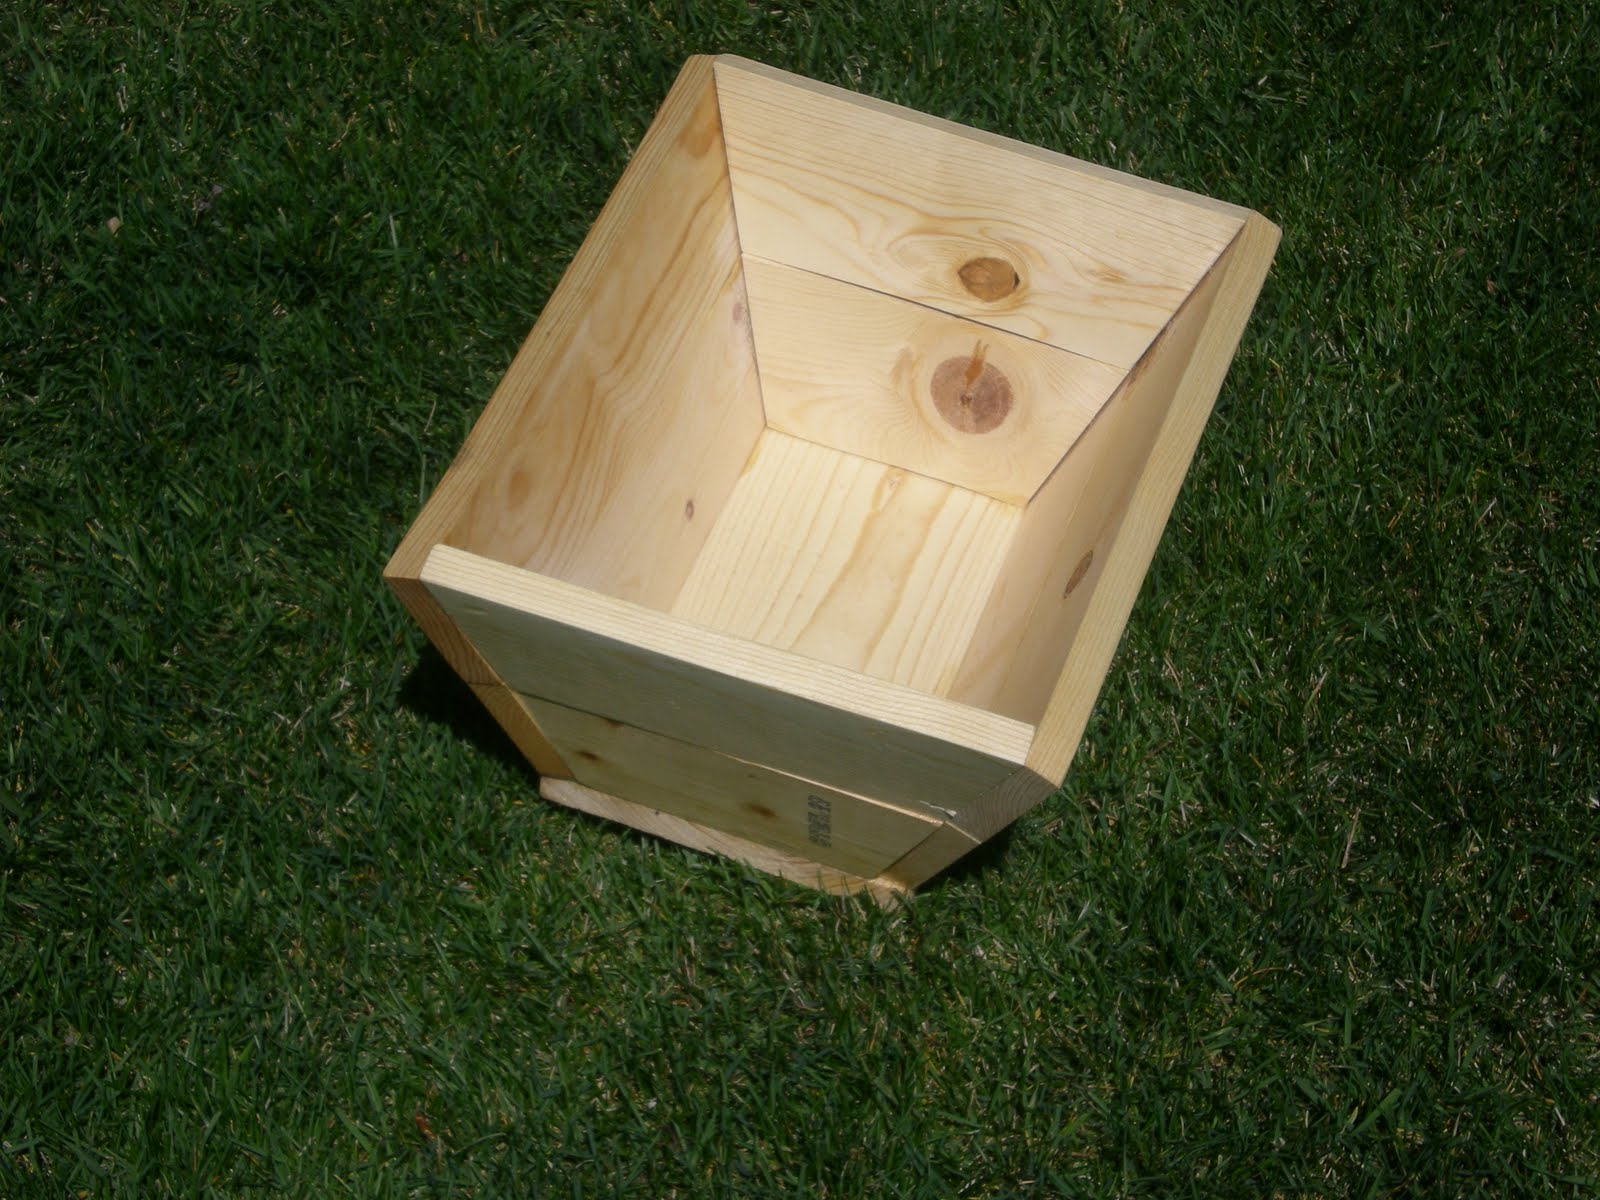 Wood flower box plans woodideas for Wooden garden box designs